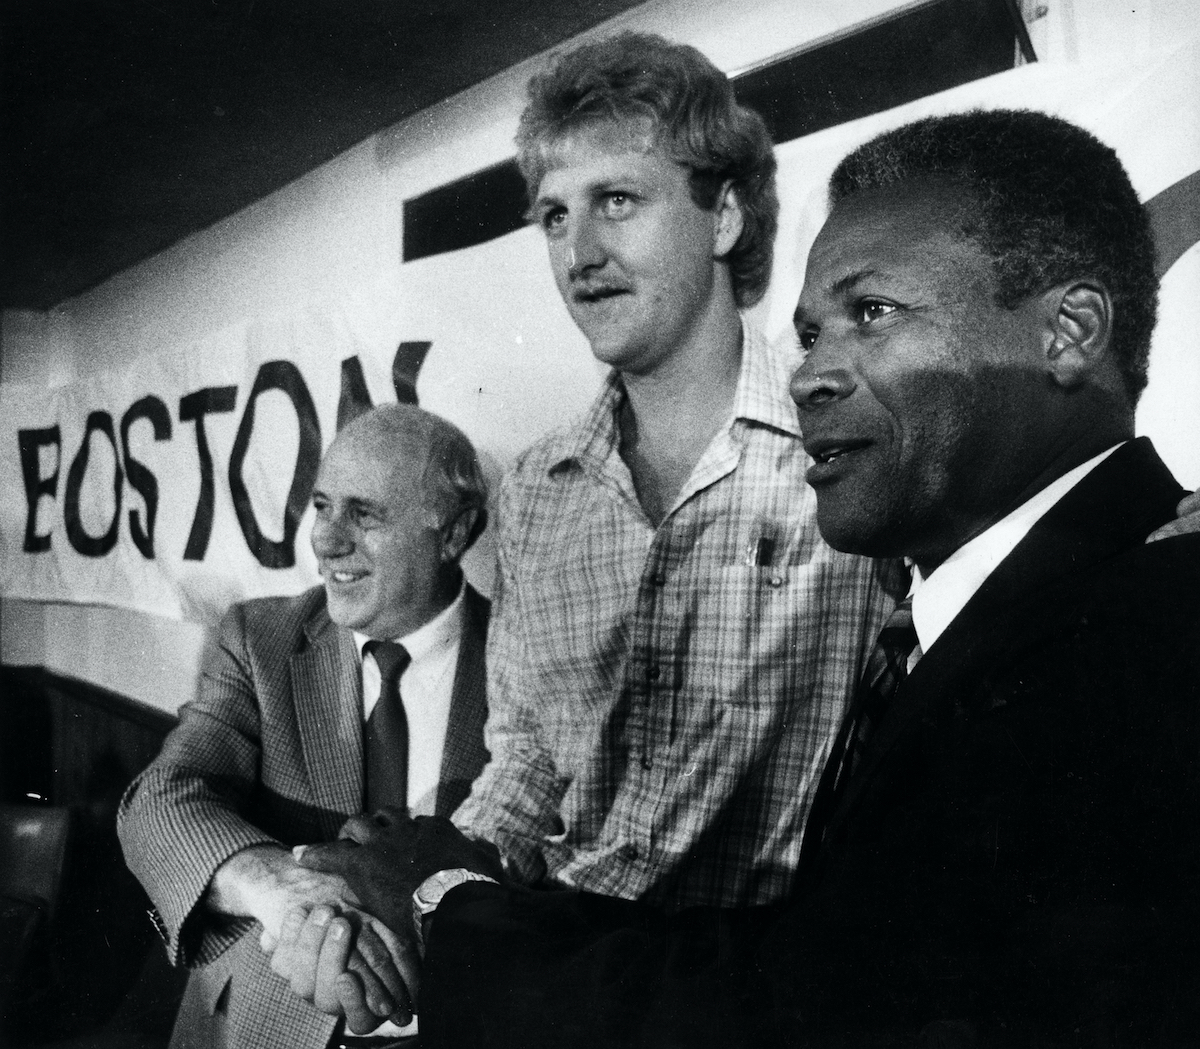 Celtics' general manager Red Auerbach, Larry Bird, and coach K.C. Jones